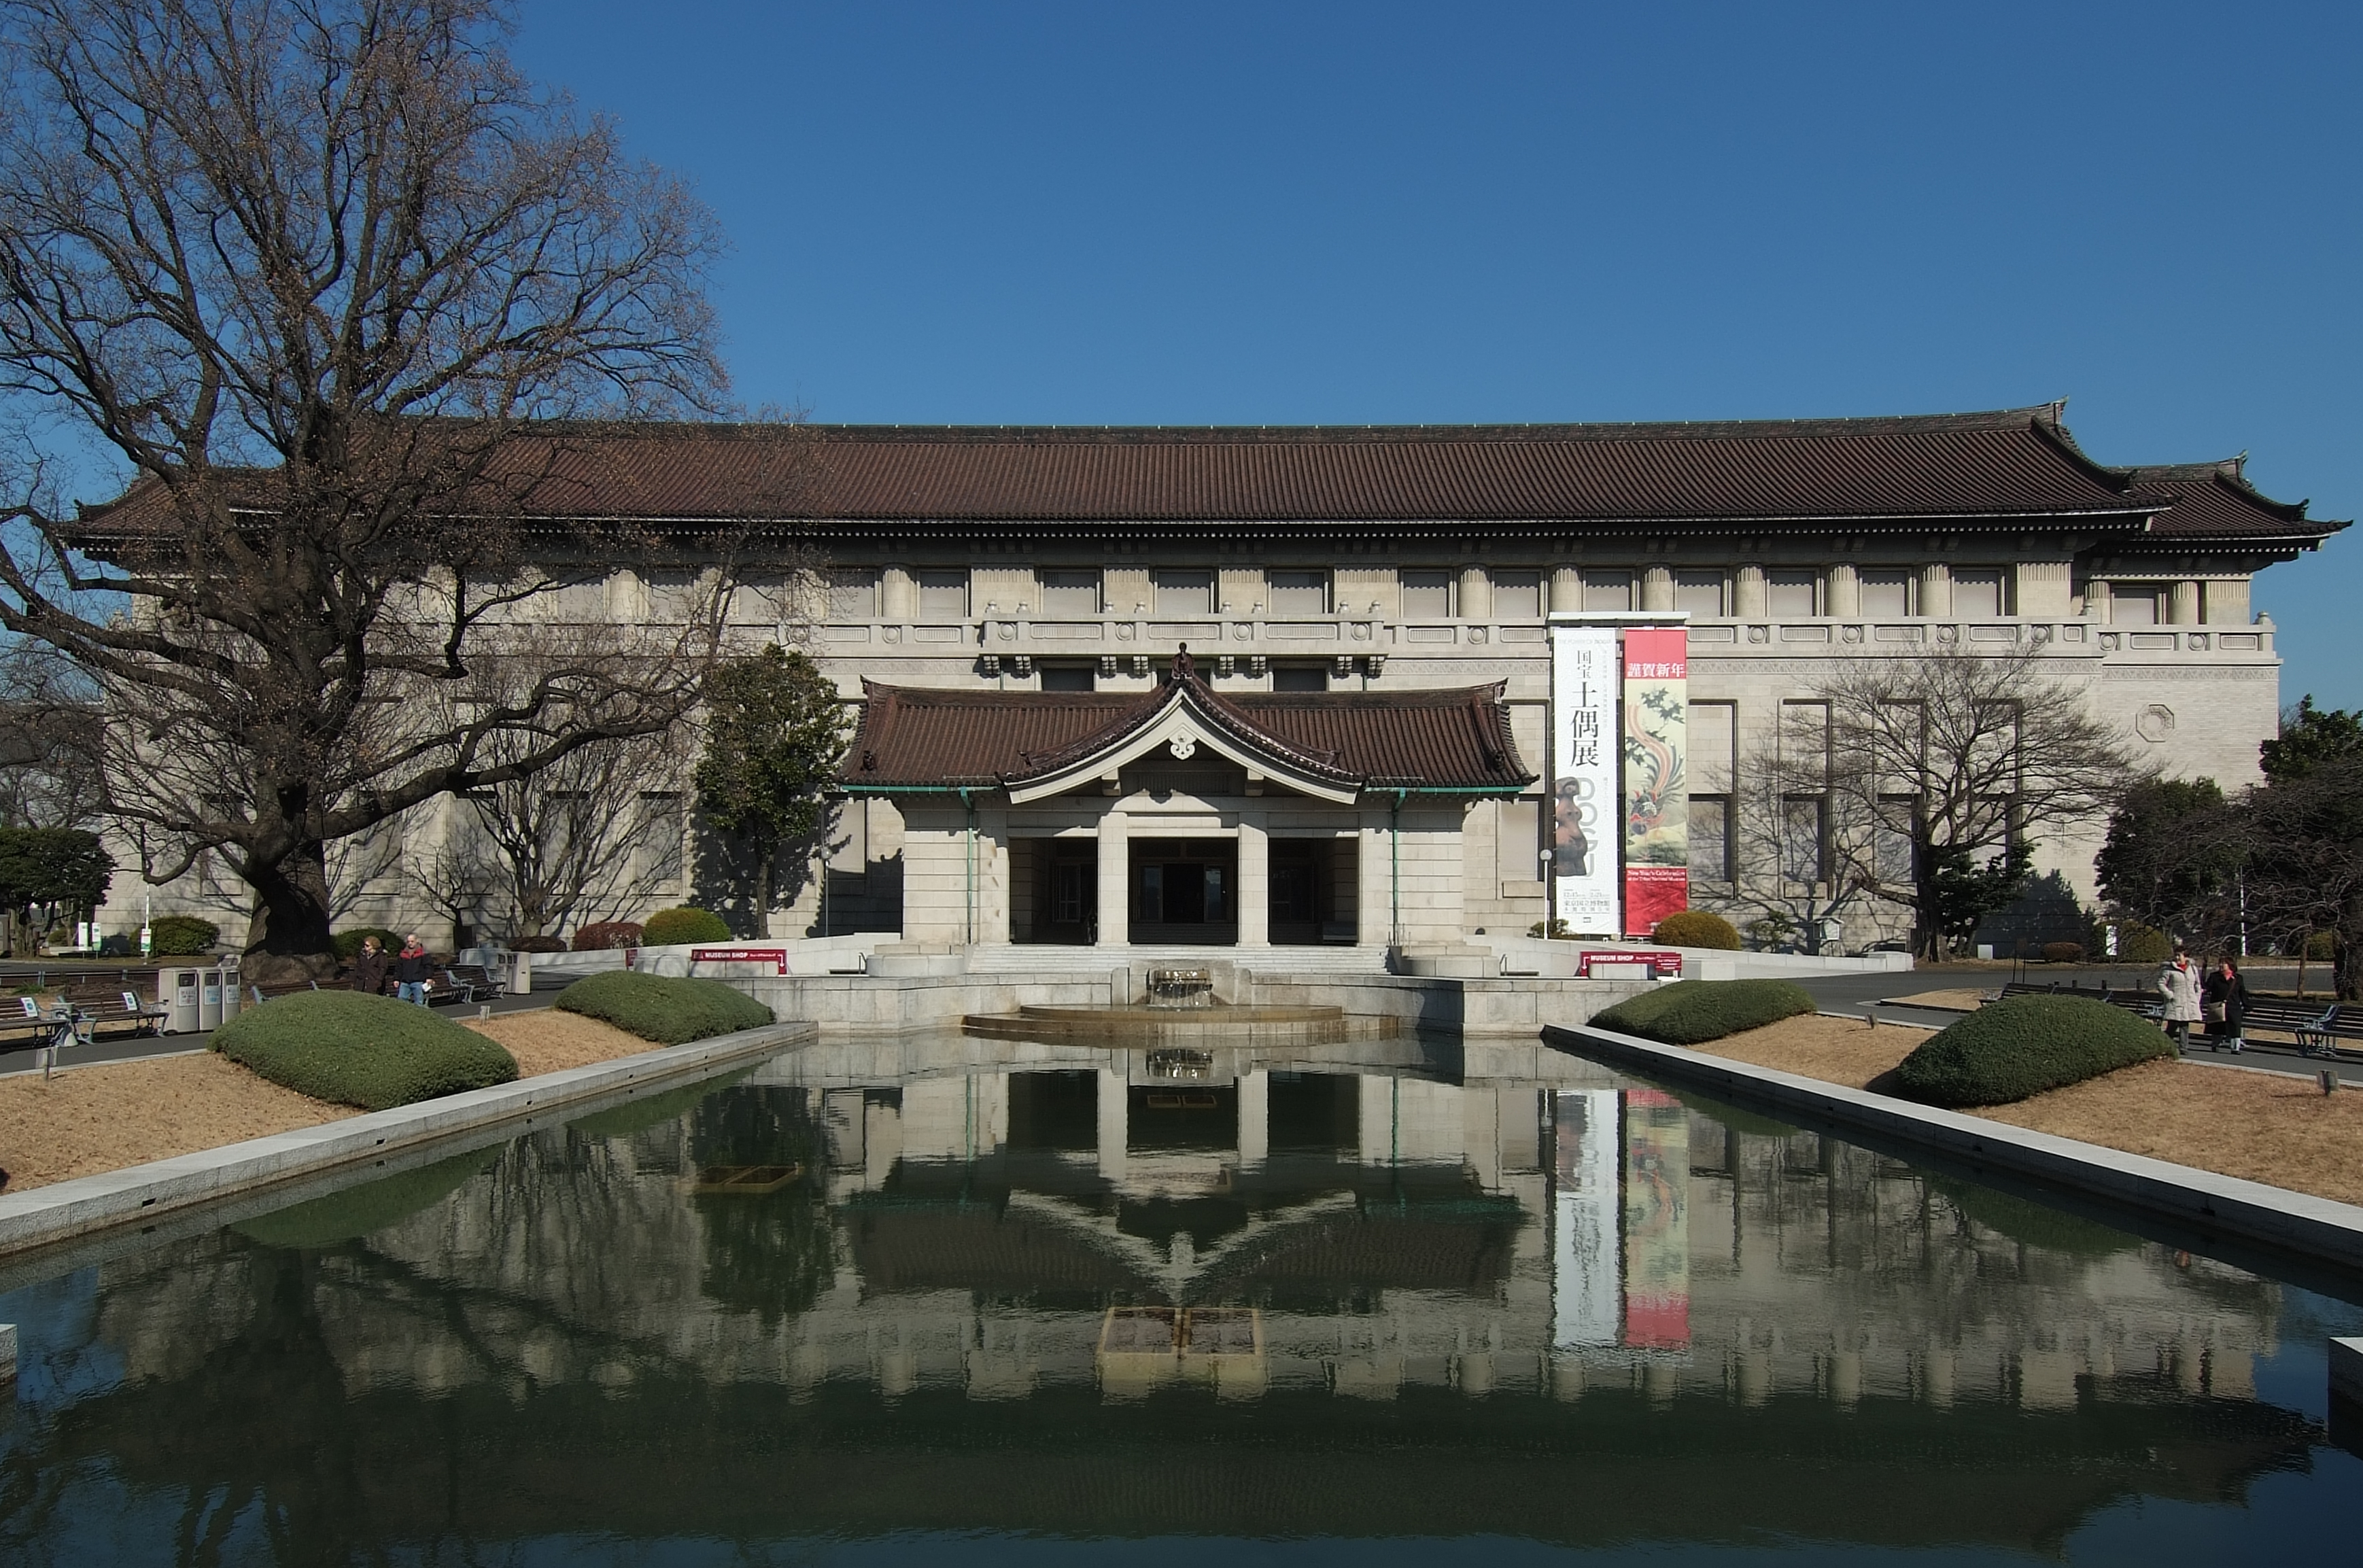 https://upload.wikimedia.org/wikipedia/commons/a/a5/Tokyo_National_Museum,_Honkan_2010.jpg